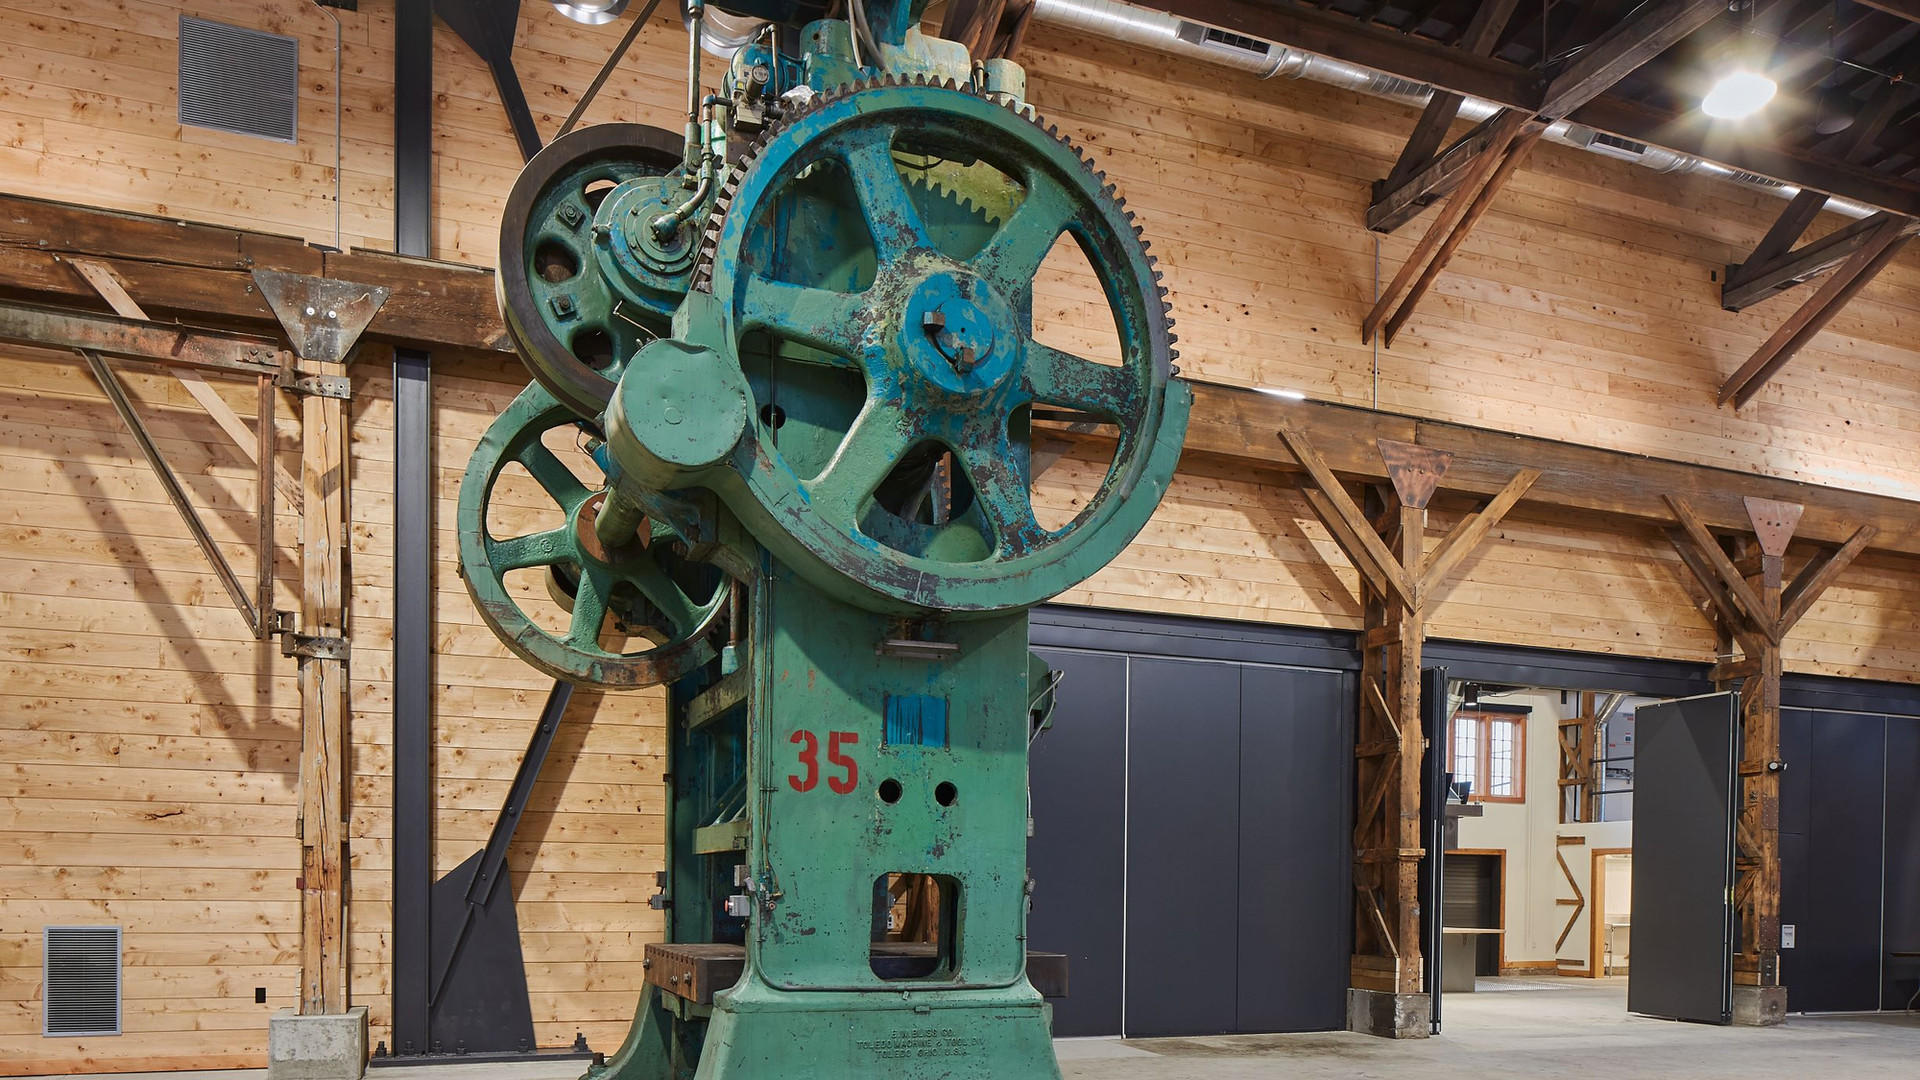 Stamping Press in the Redd Main Hall